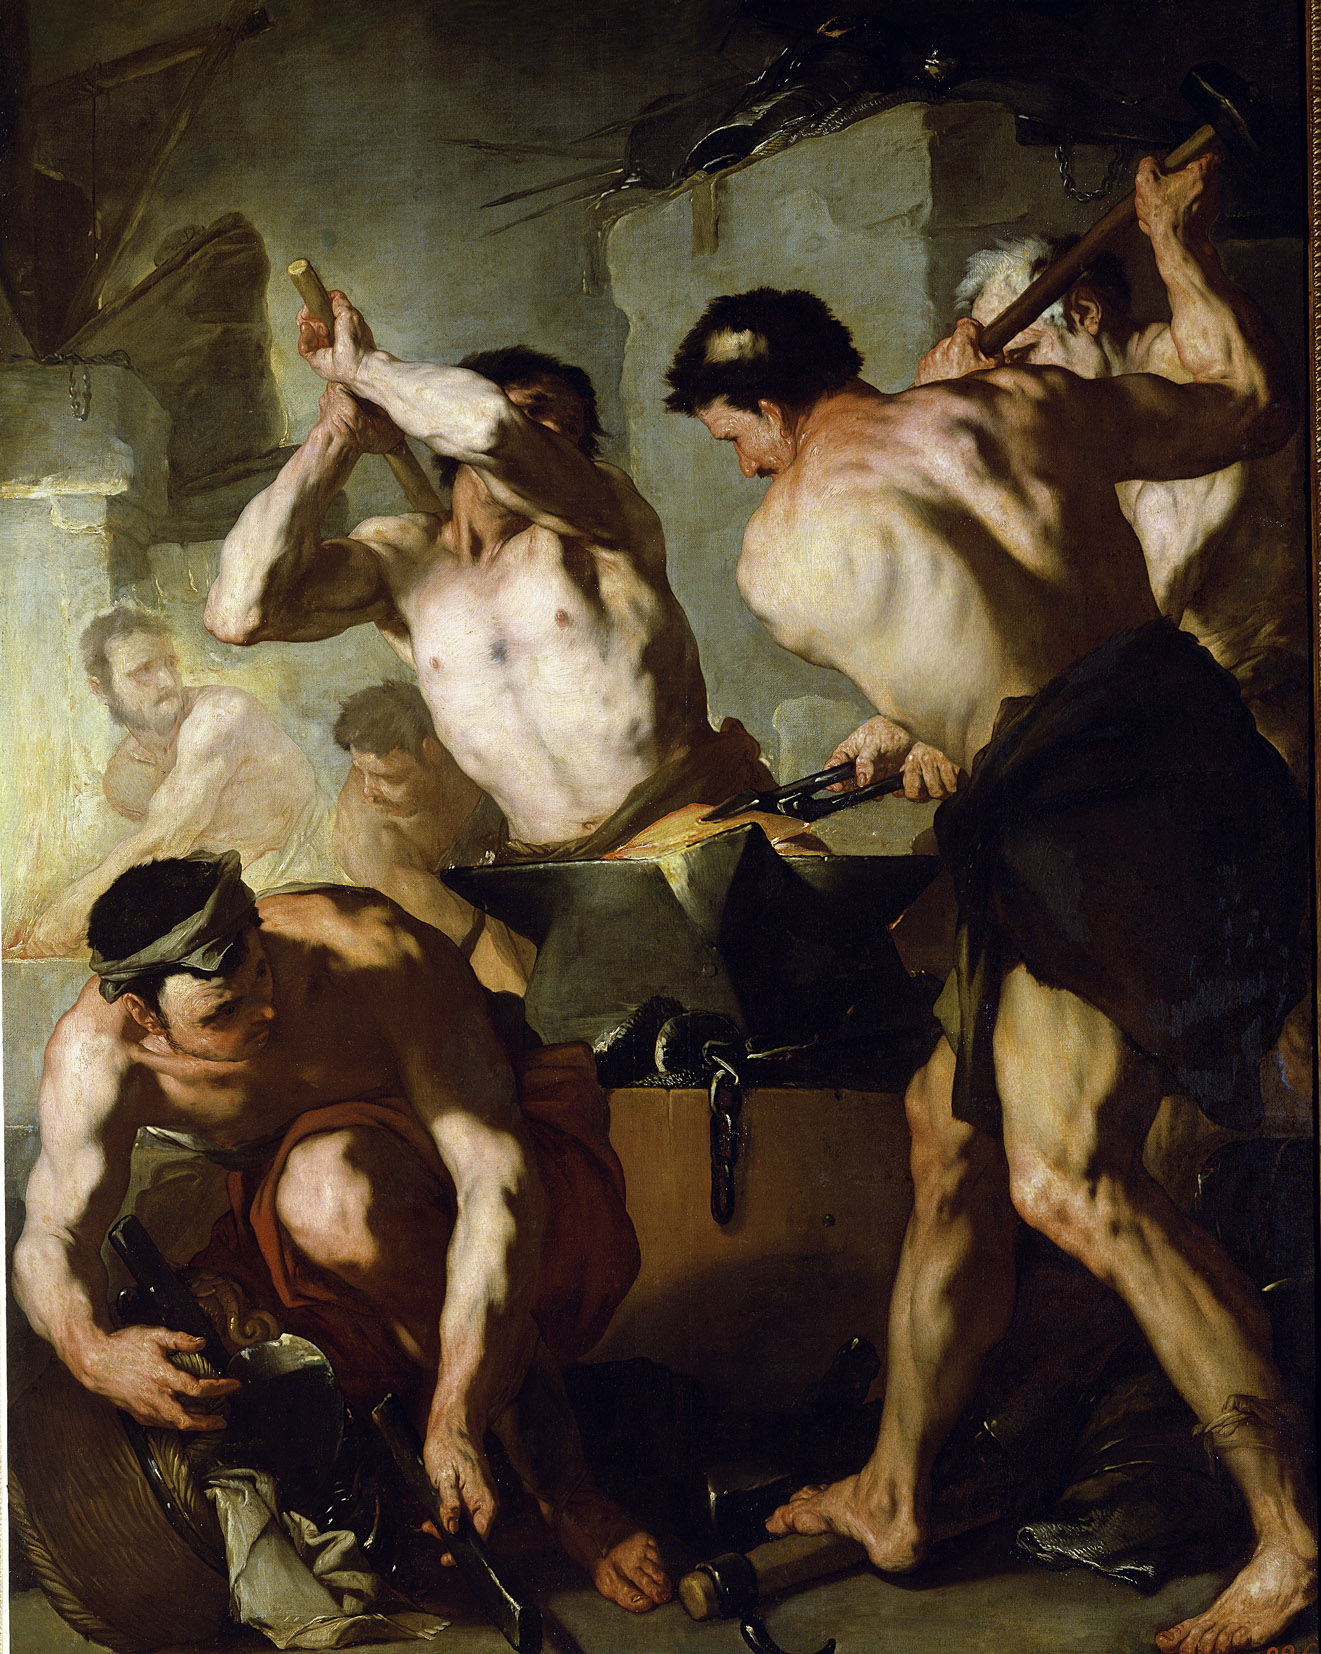 Vulcan's Forge, by Luca Giordano, c. 1660. Hermitage Museum, Saint Petersburg, Russia.